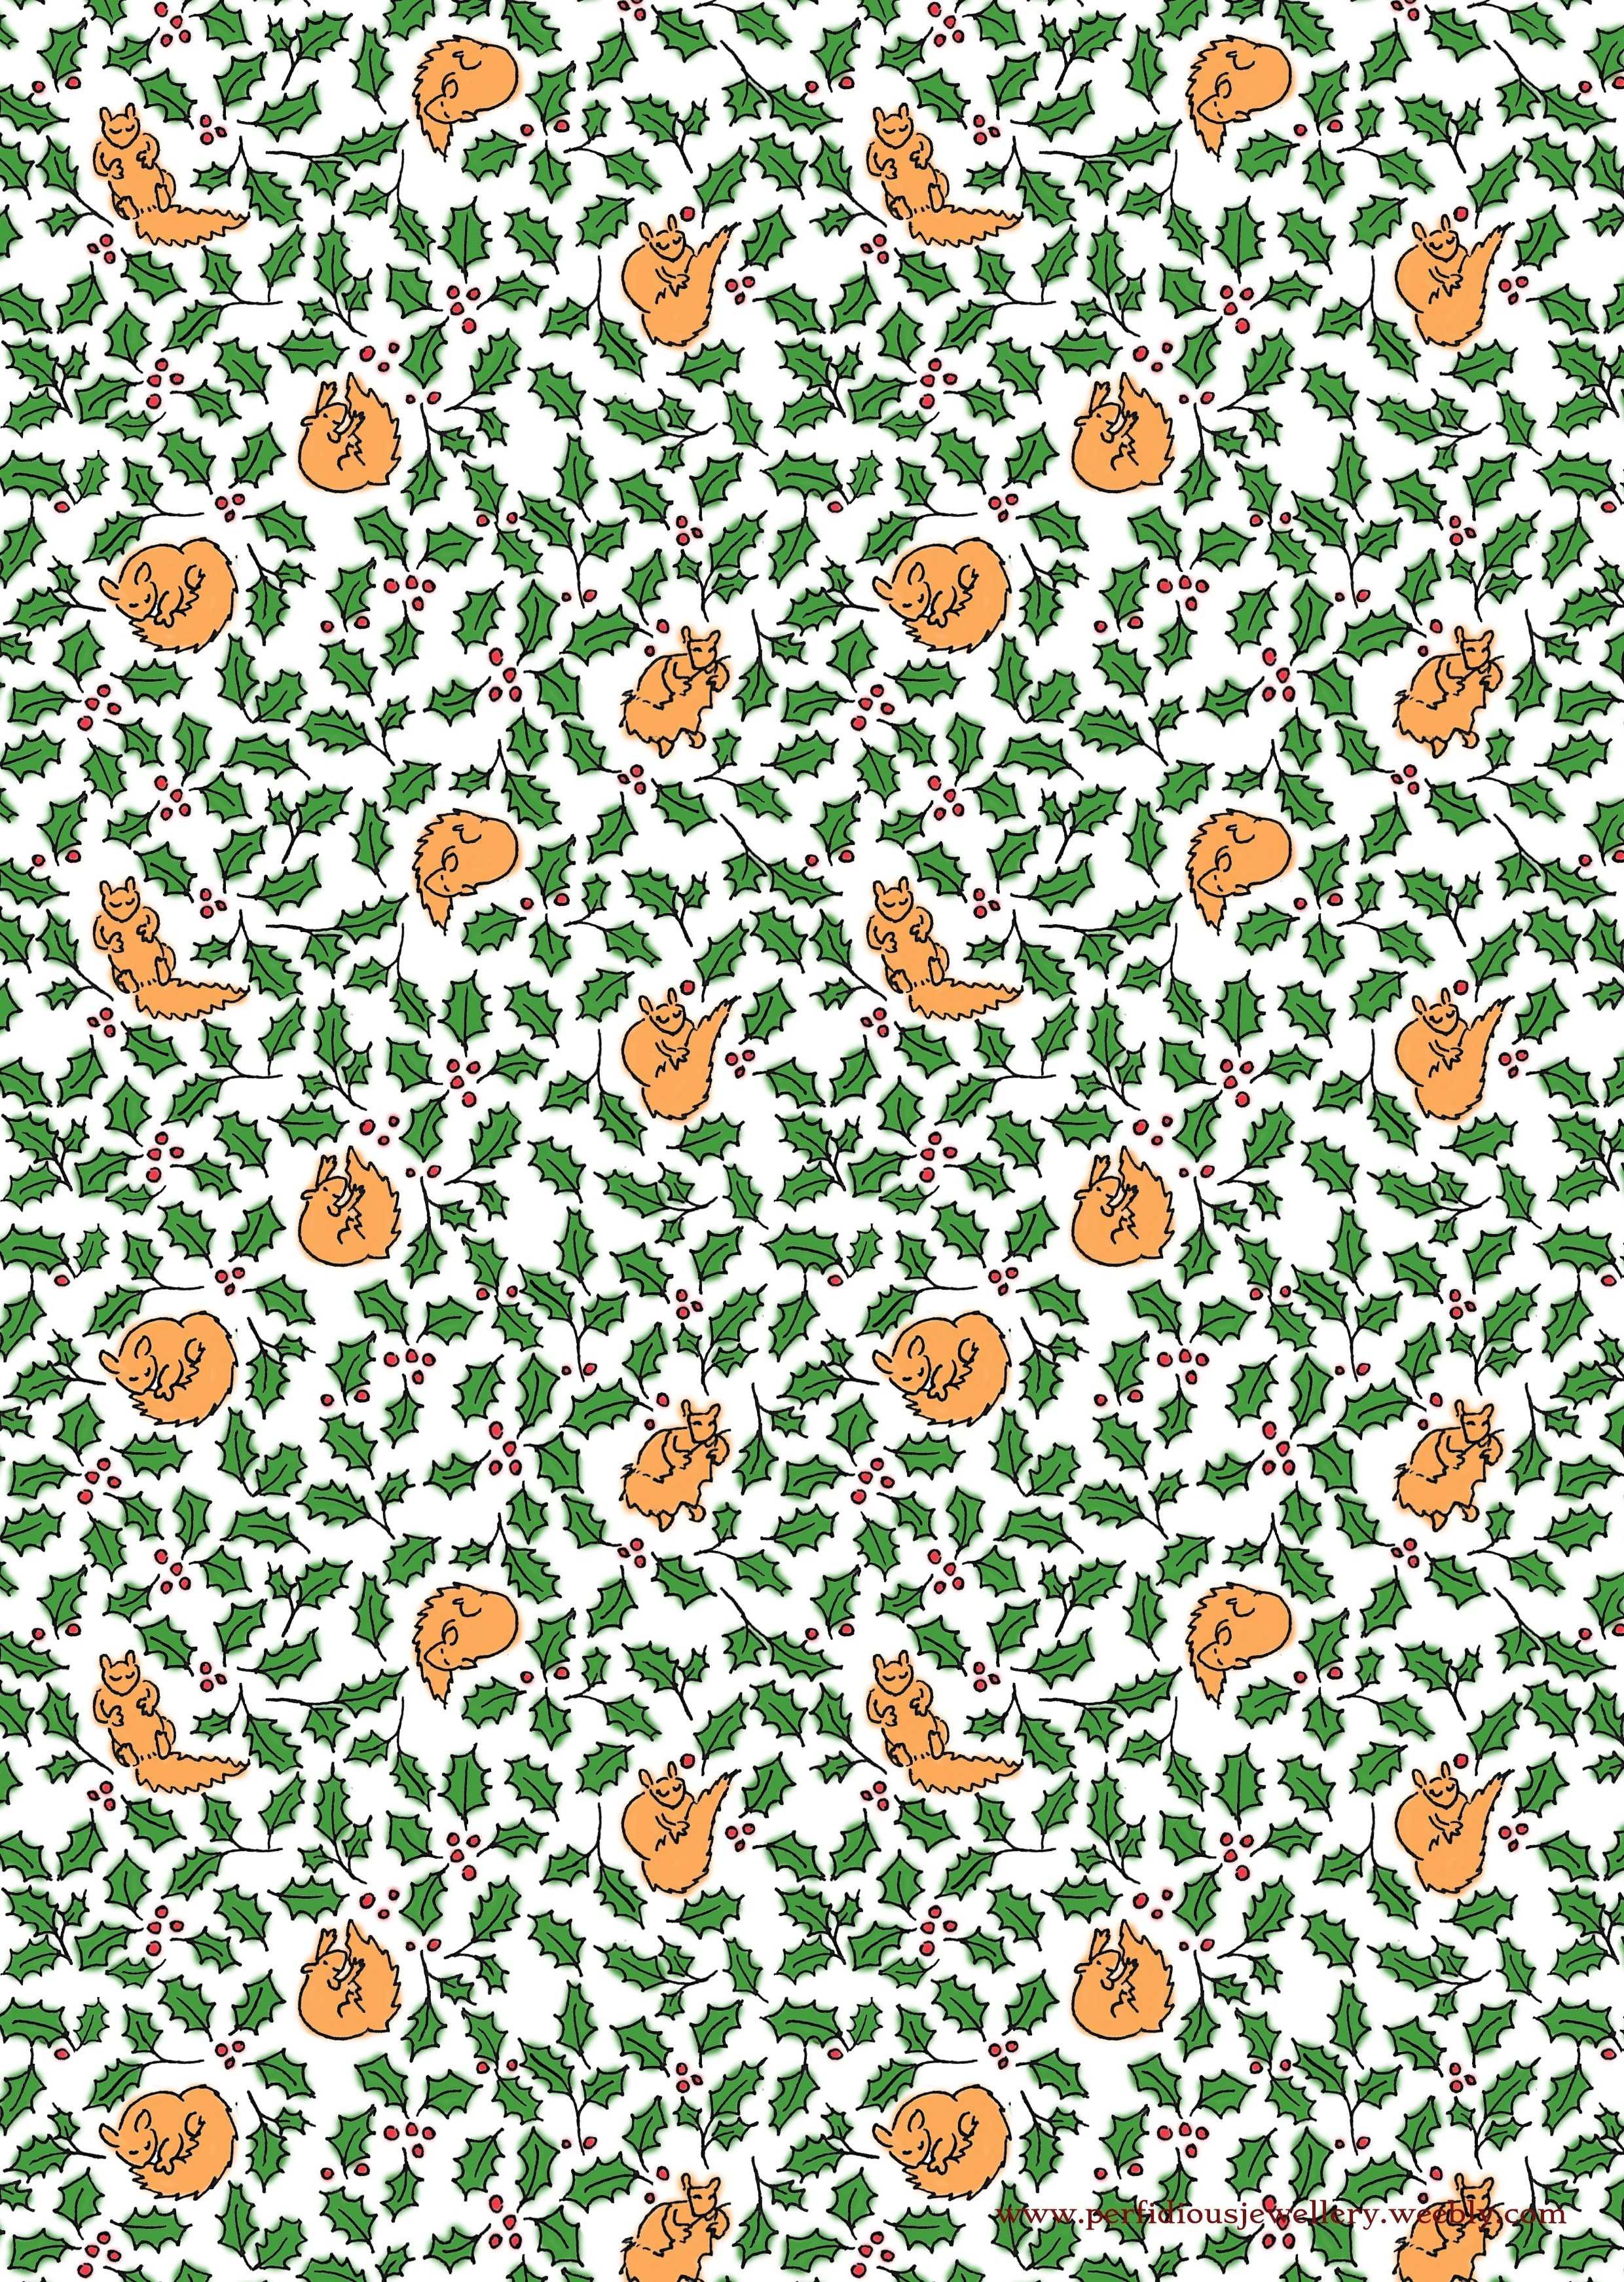 Free Printable Wrapping Paper Patterns - Malcolmmcdowell - Free Printable Wrapping Paper Patterns